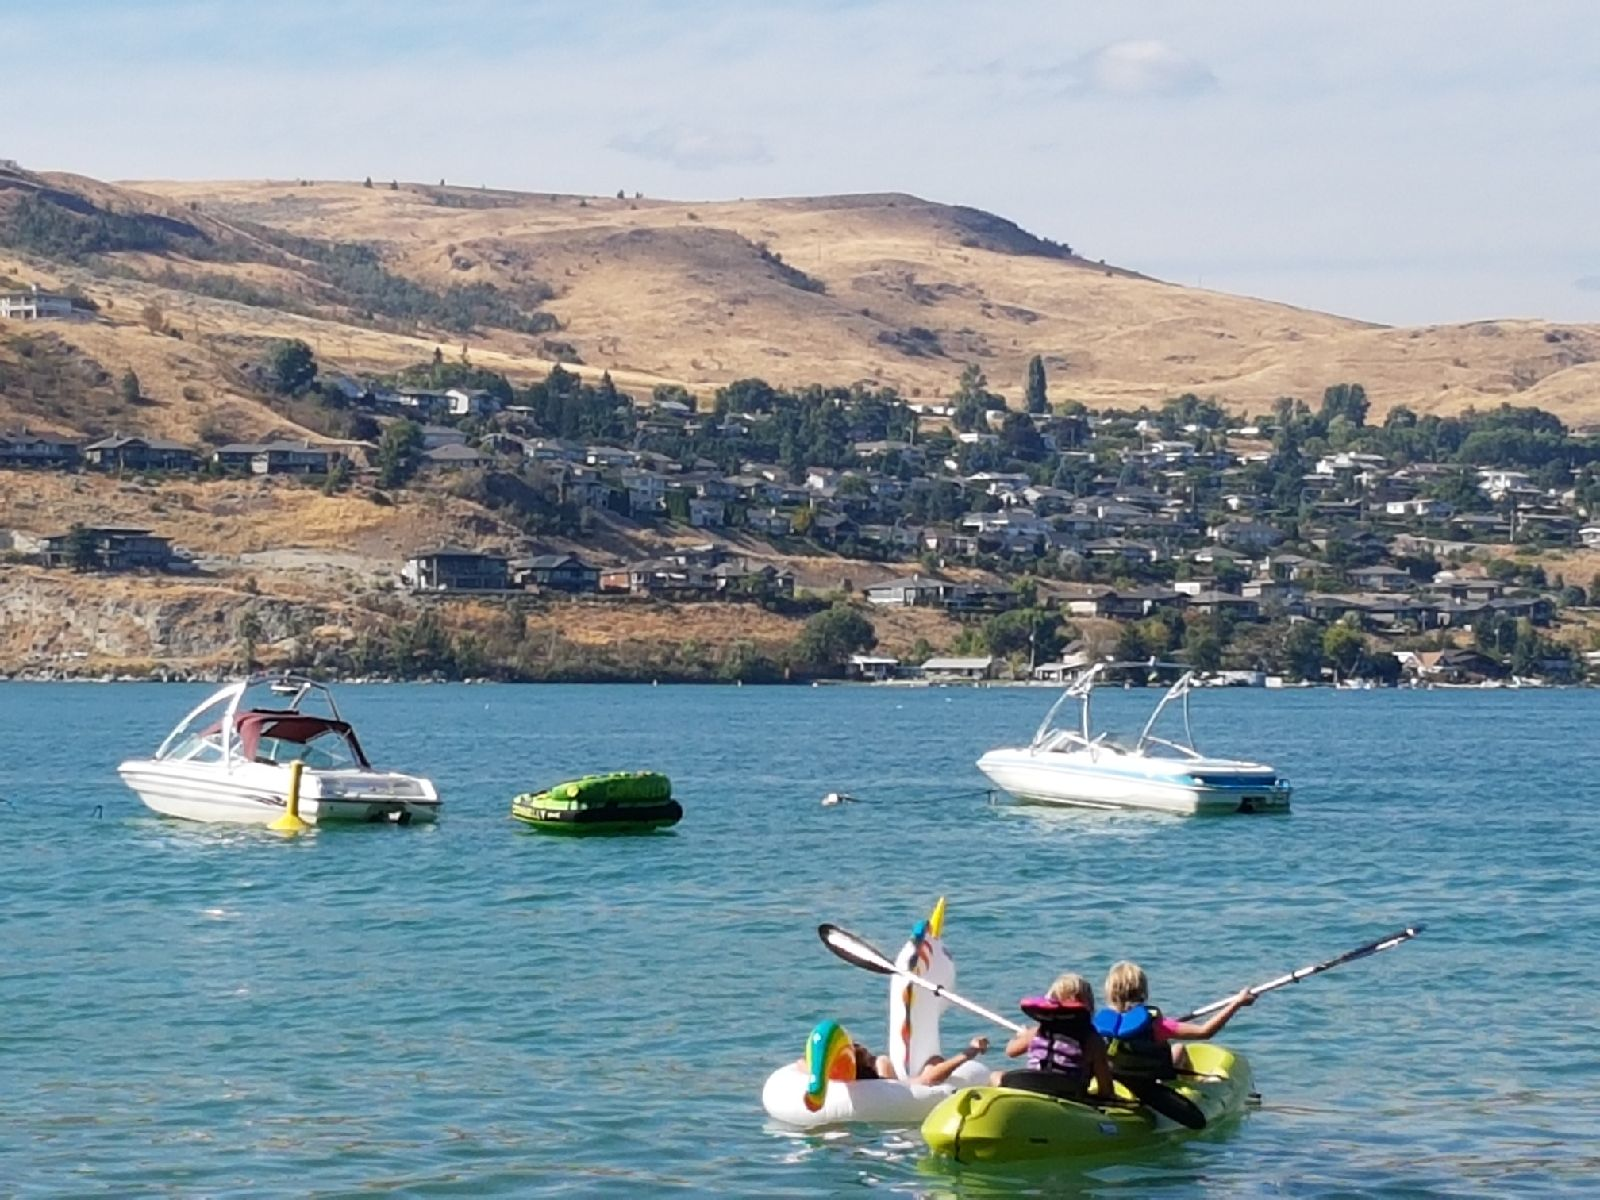 B.C.'s Top Boating Destination Is?